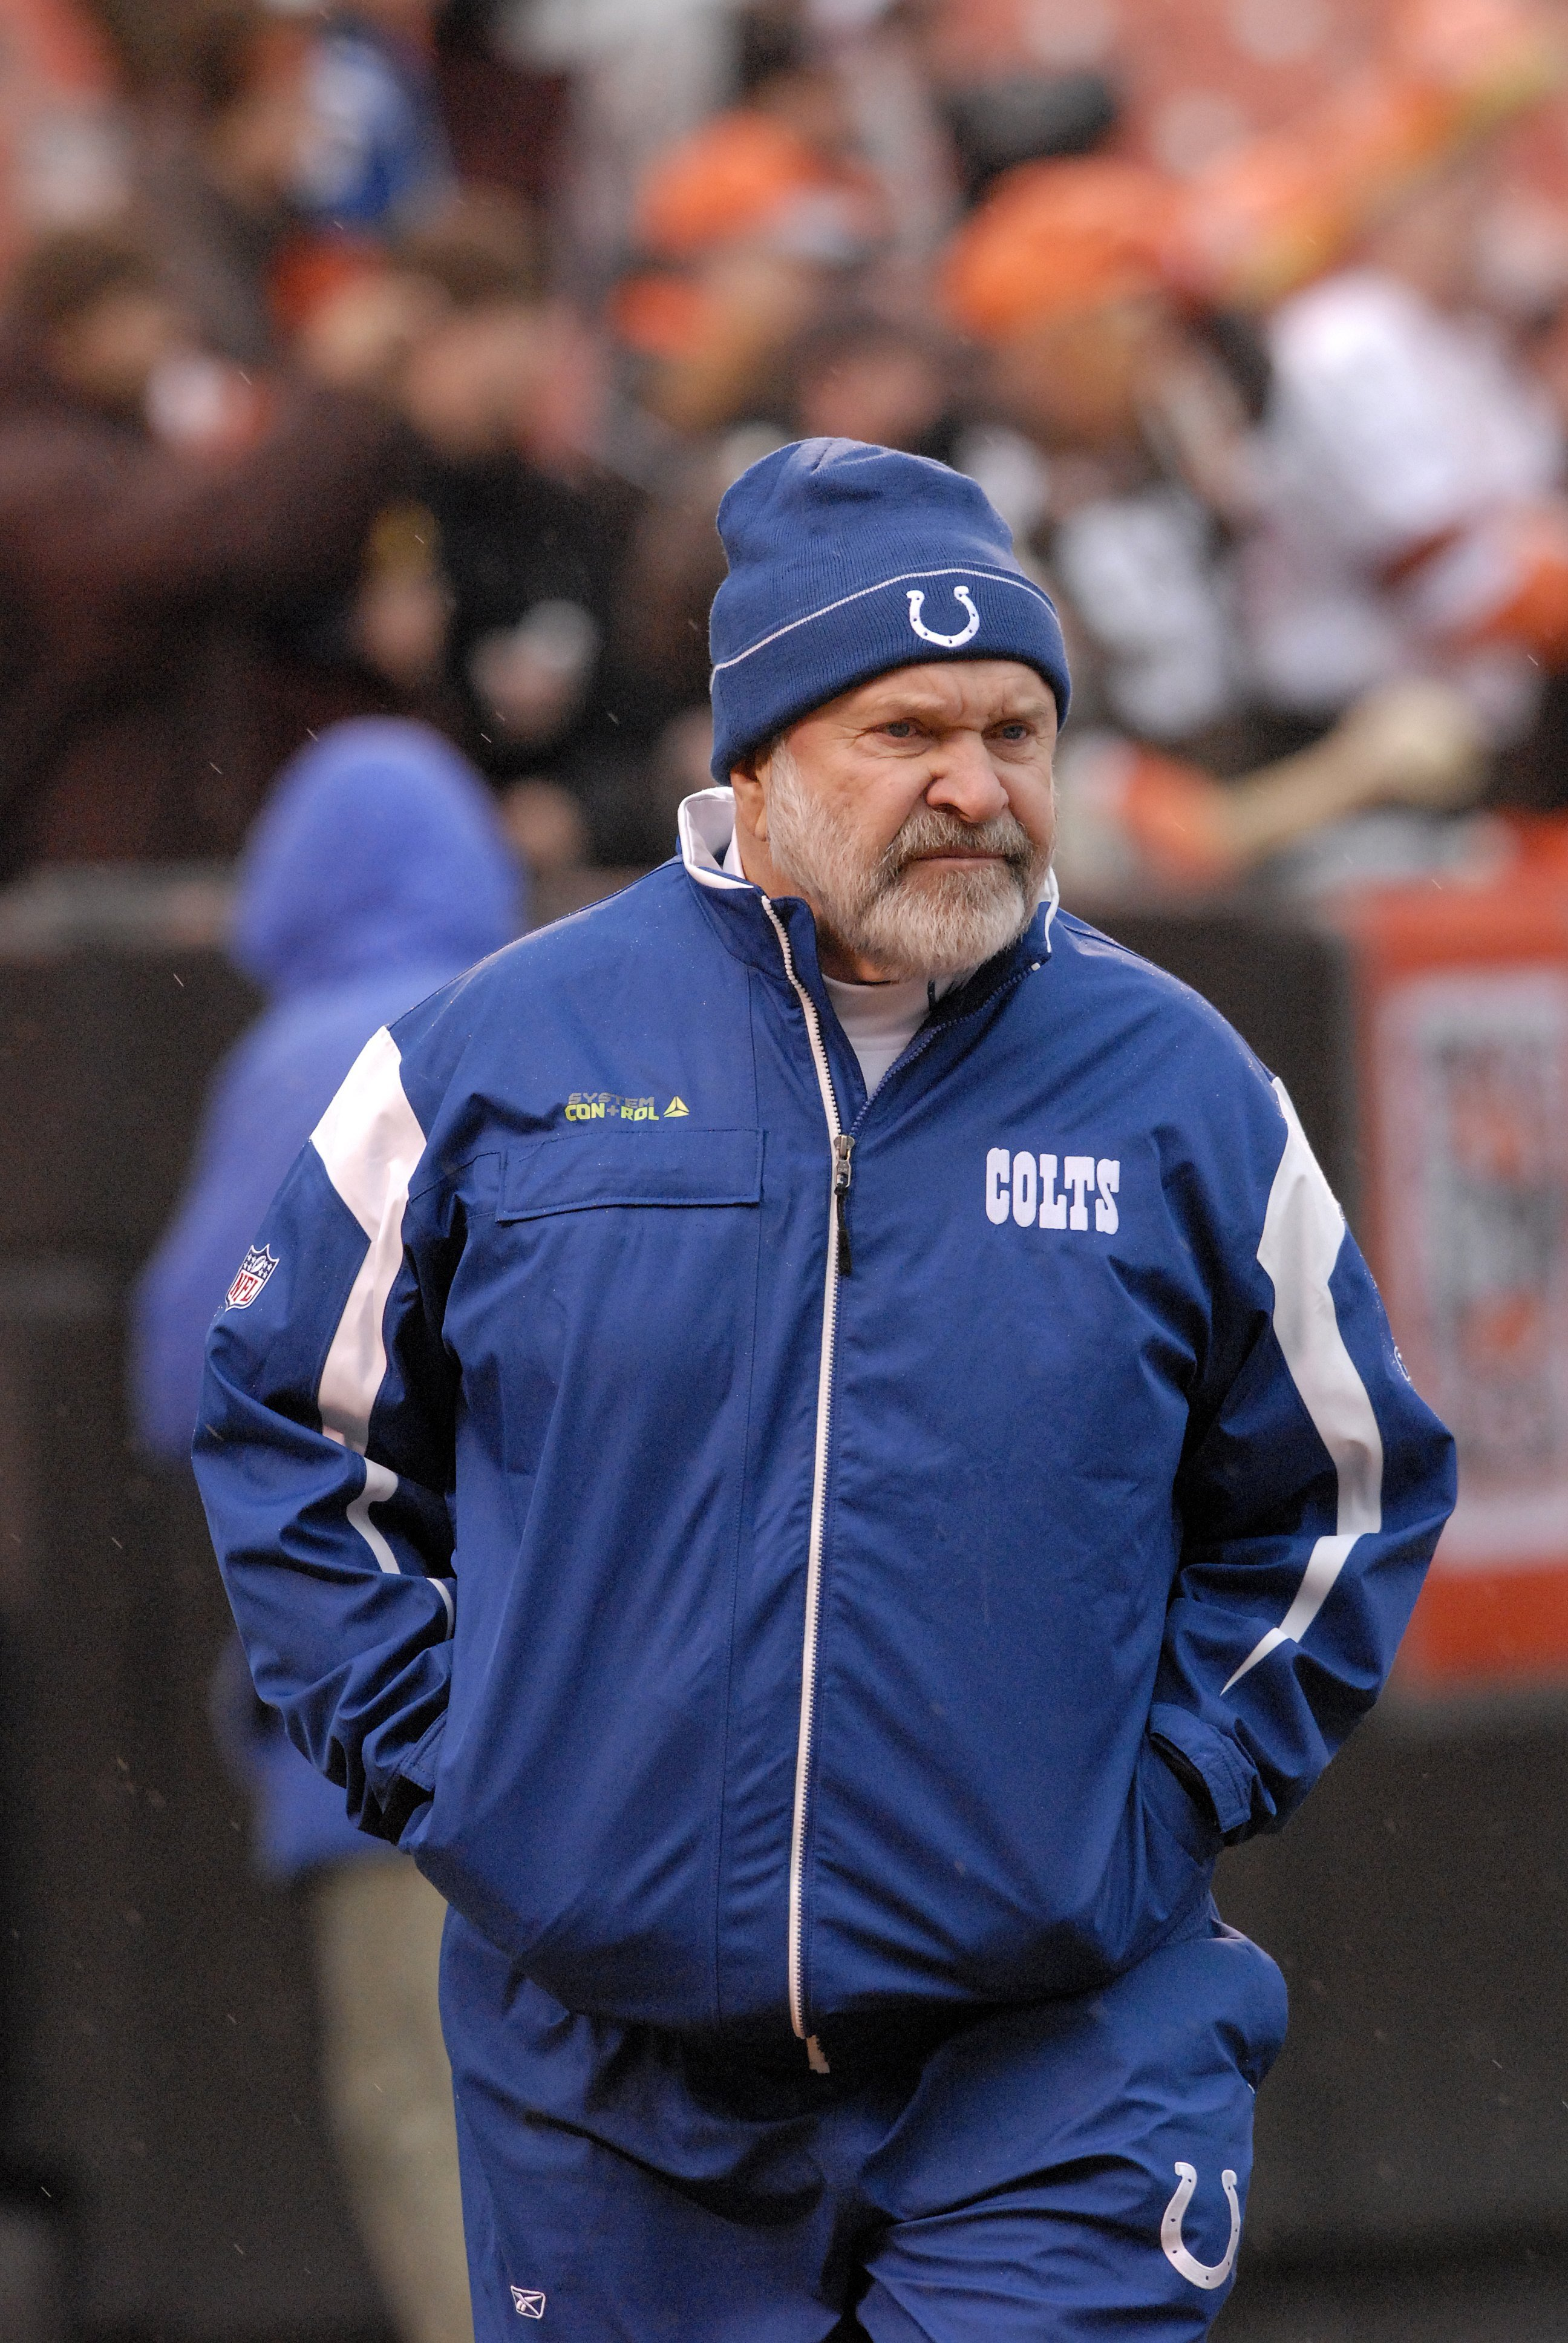 Assistant coach Howard Mudd of the Indianapolis Colts watches pre-game warm ups prior to a game on Sunday, November 30, 2008. | Source: Getty Images.